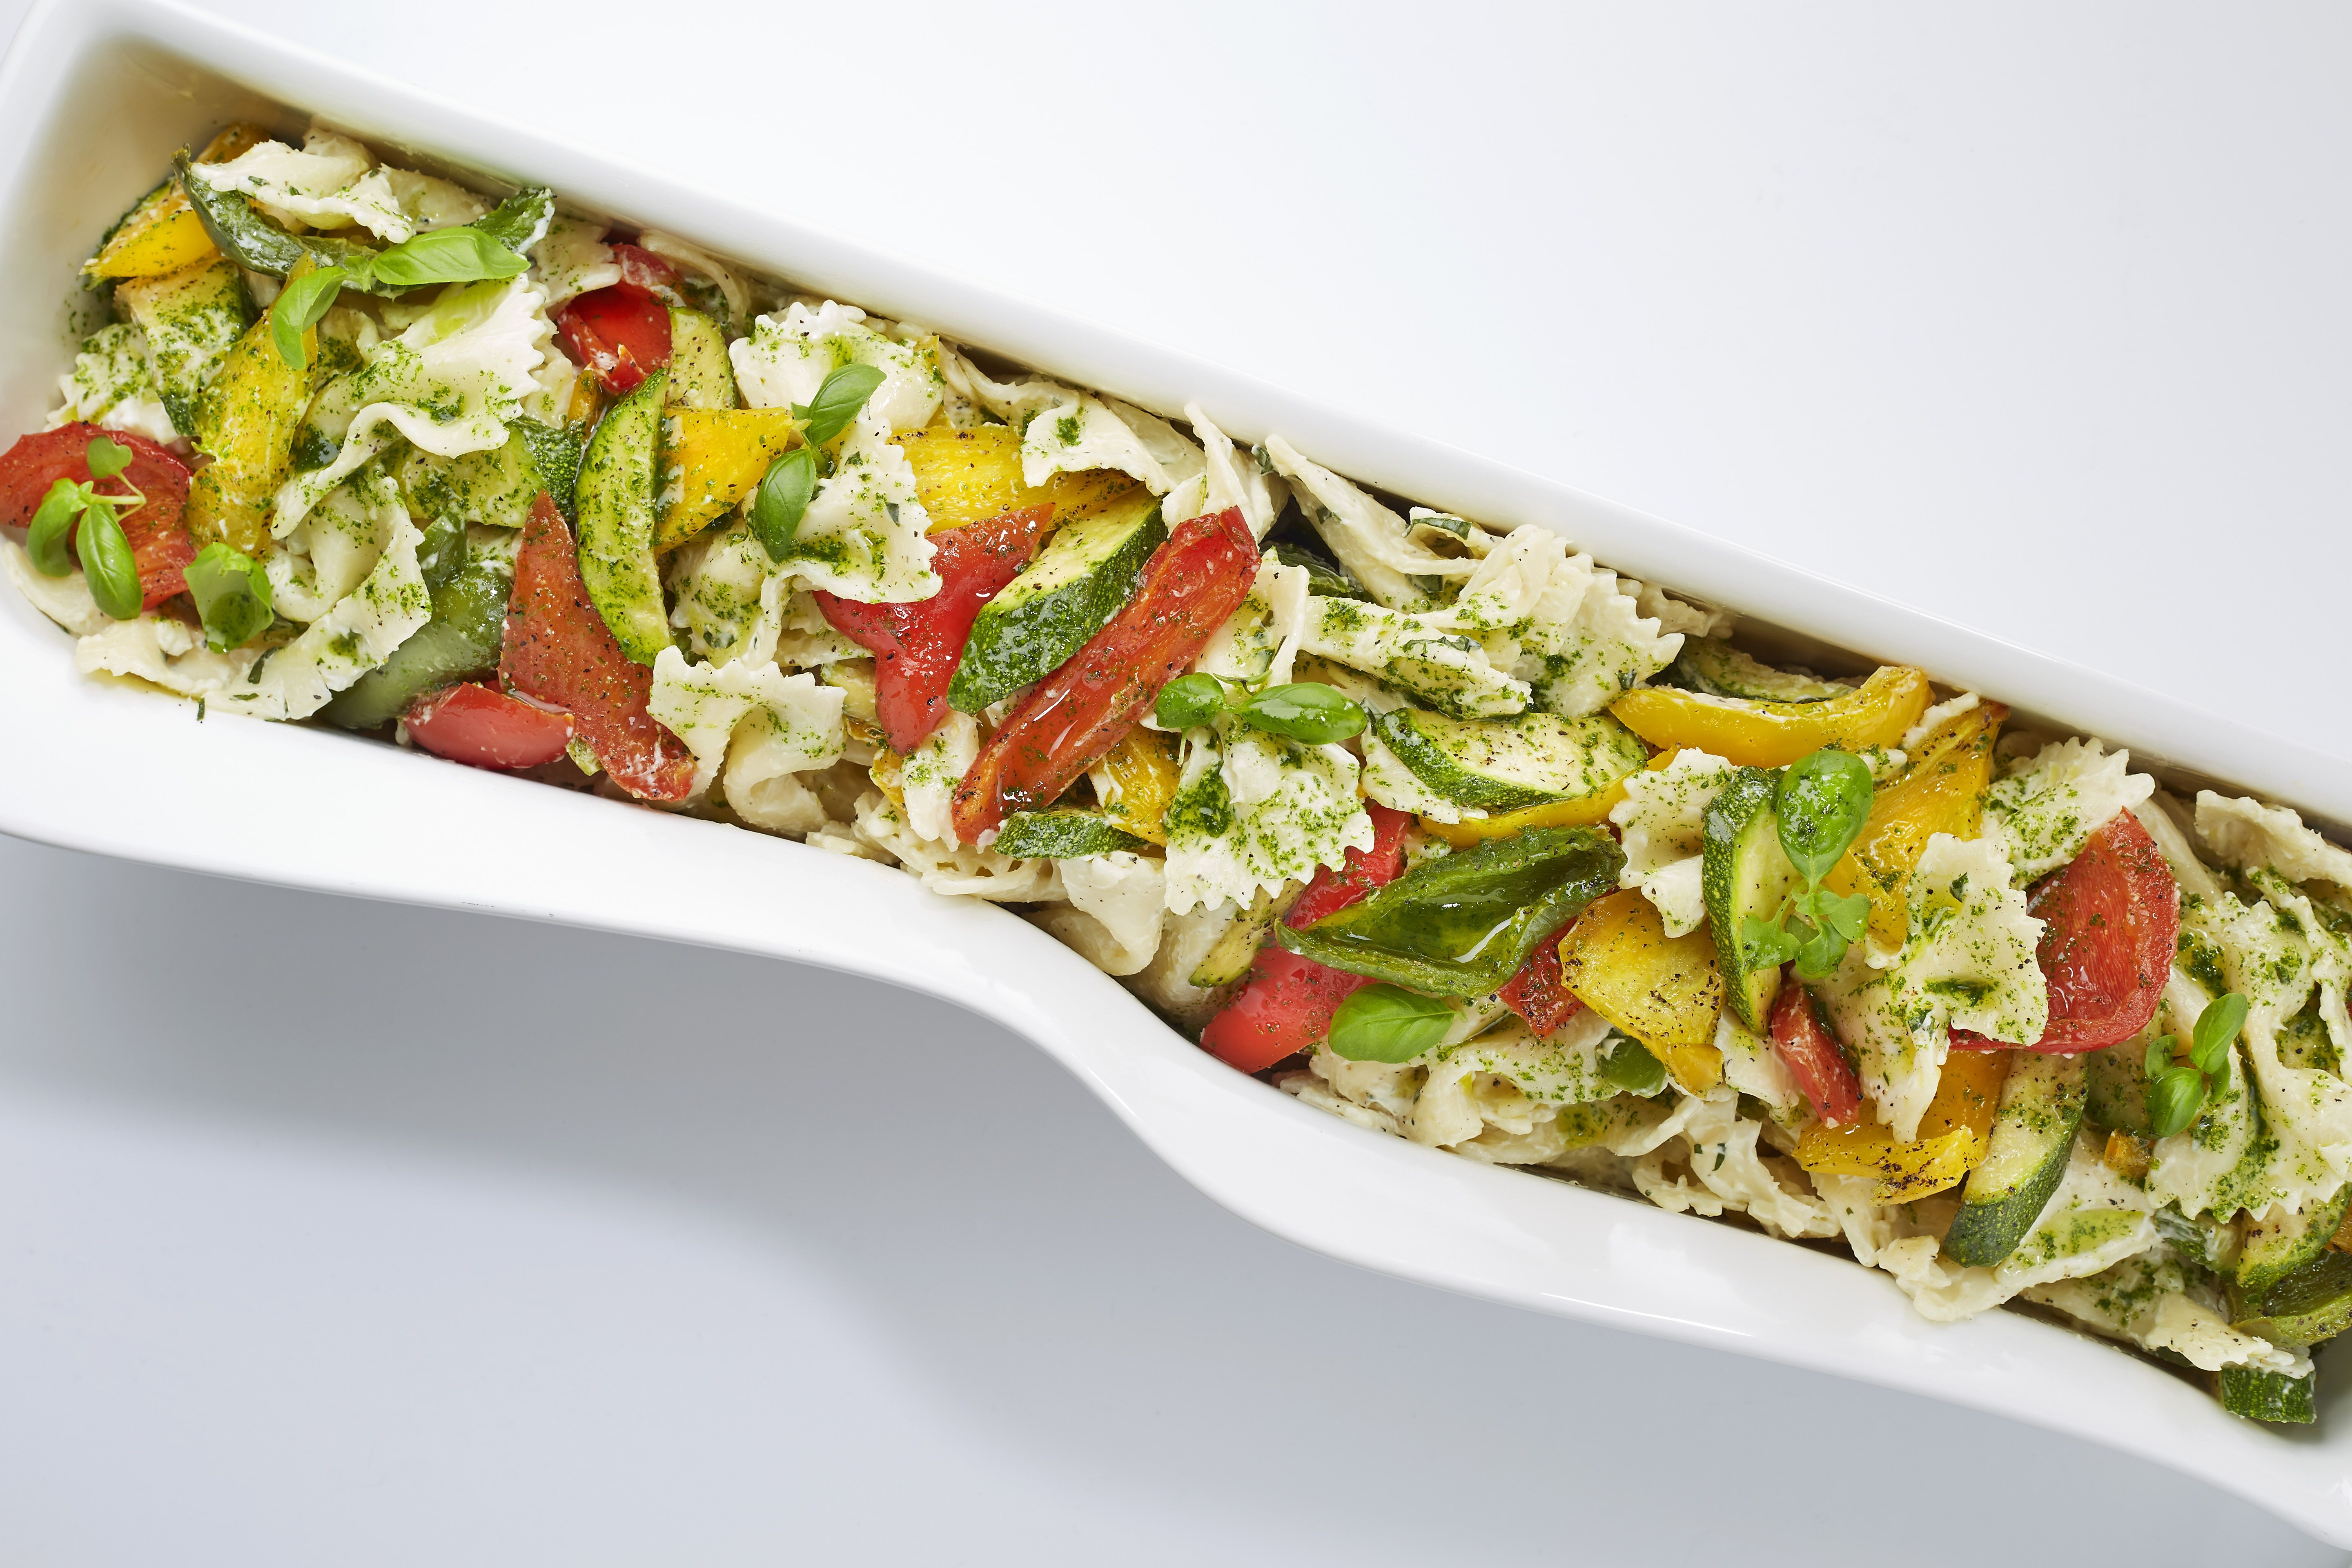 Fork buffet salad - Farfalle pasta with courgette, peppers and basil mayonnaise